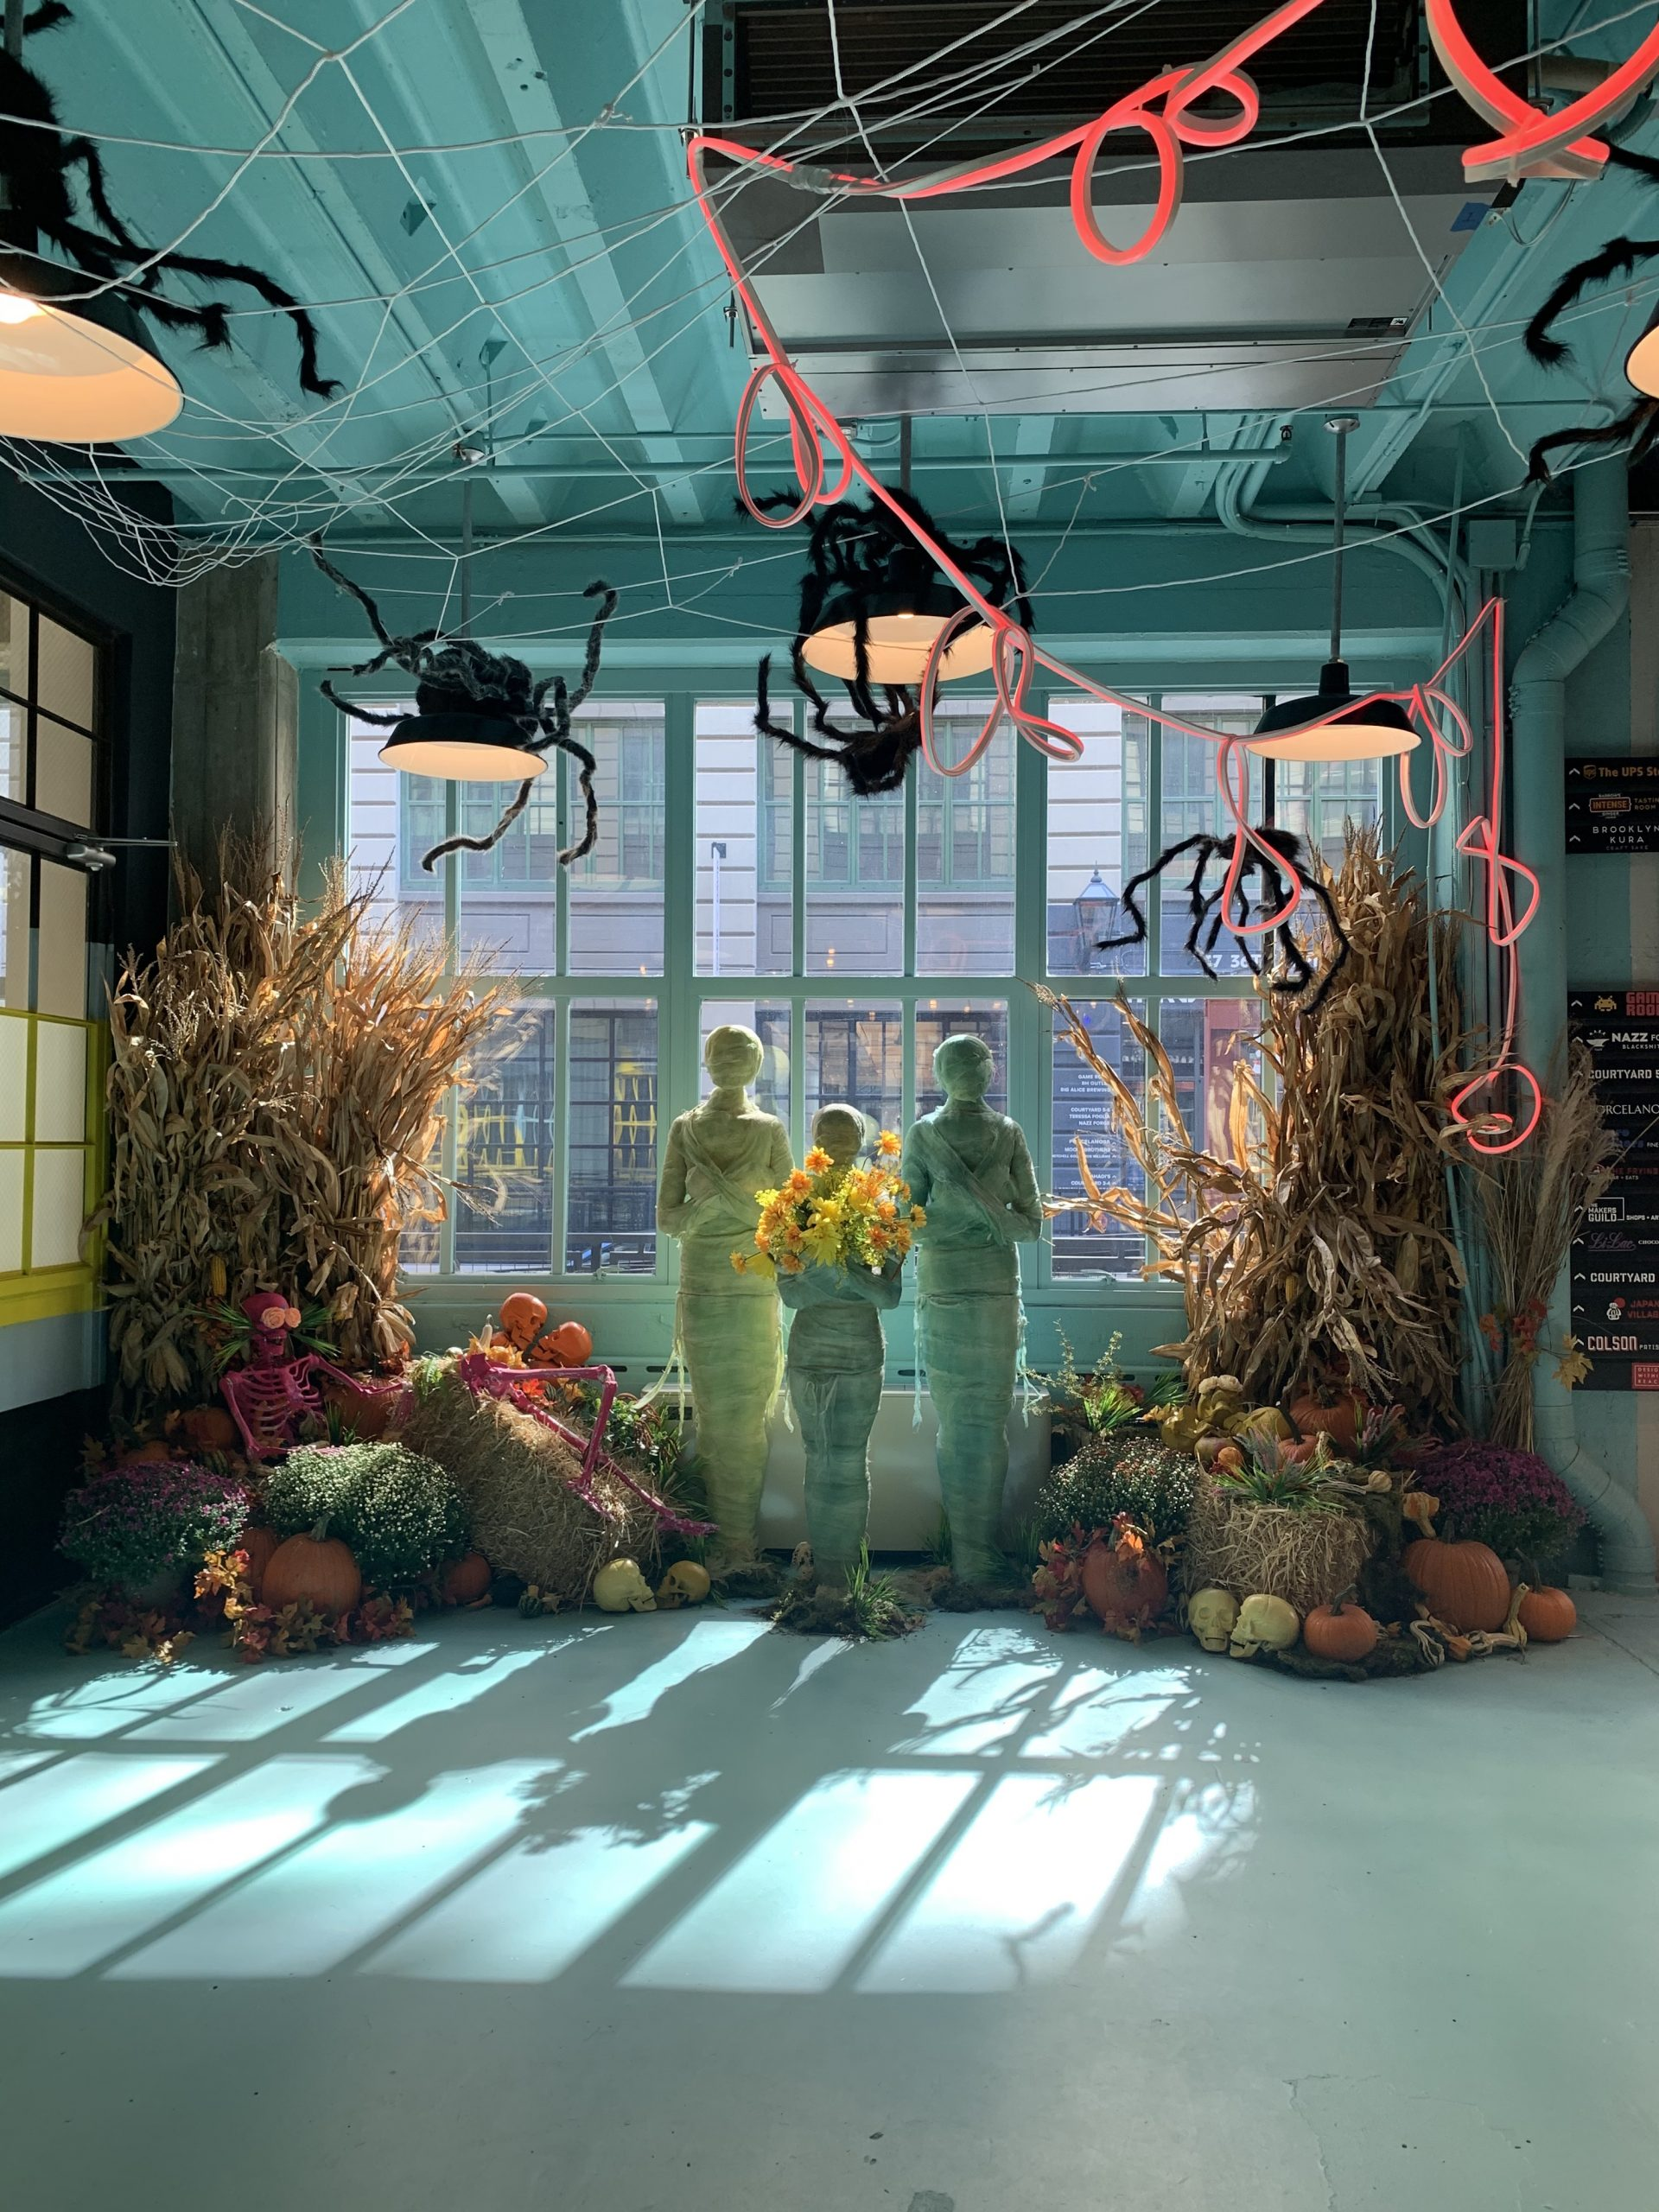 Halloween Decoration Things To Do In NYC: Industry City